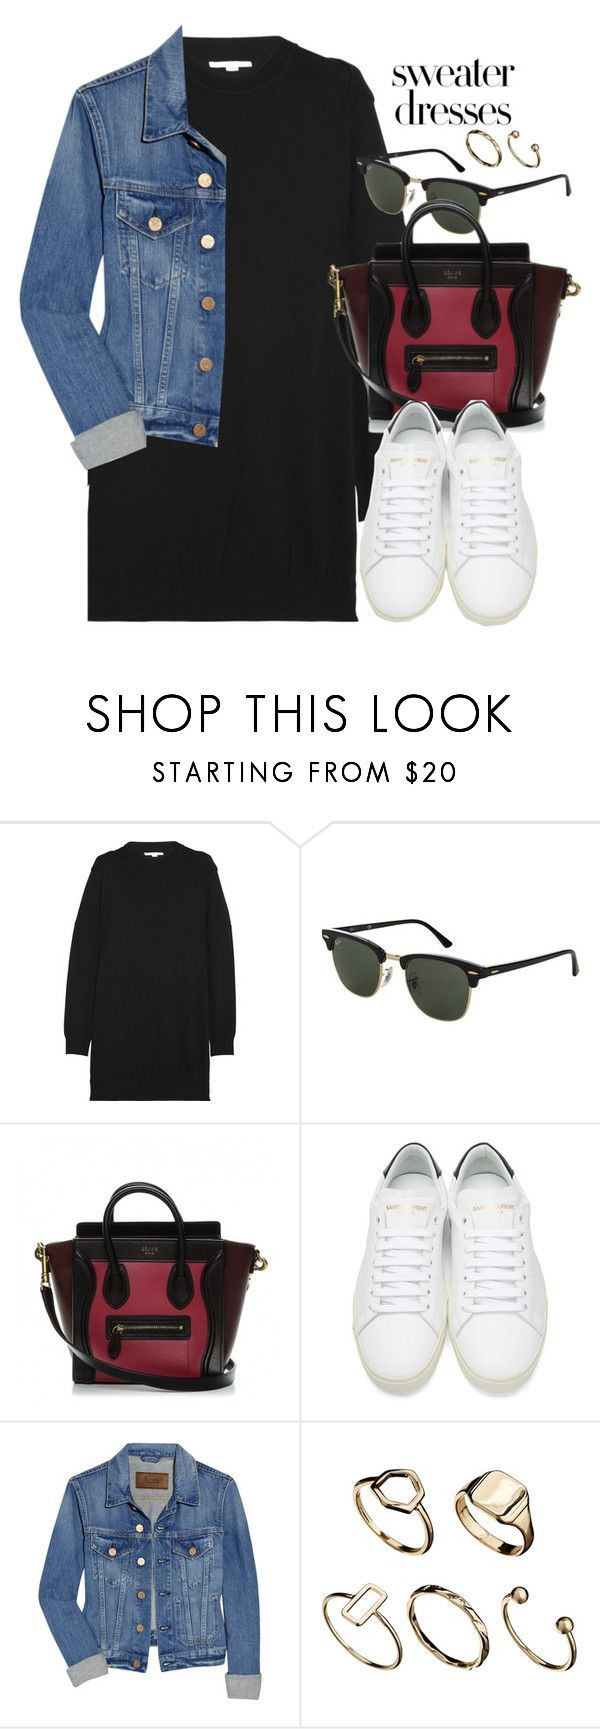 """Sin título #13621"" by vany-alvarado ❤ liked on Polyvore featuring Alexander Wang, Topshop, Yves Saint Laurent, Acne Studios and ASOS"